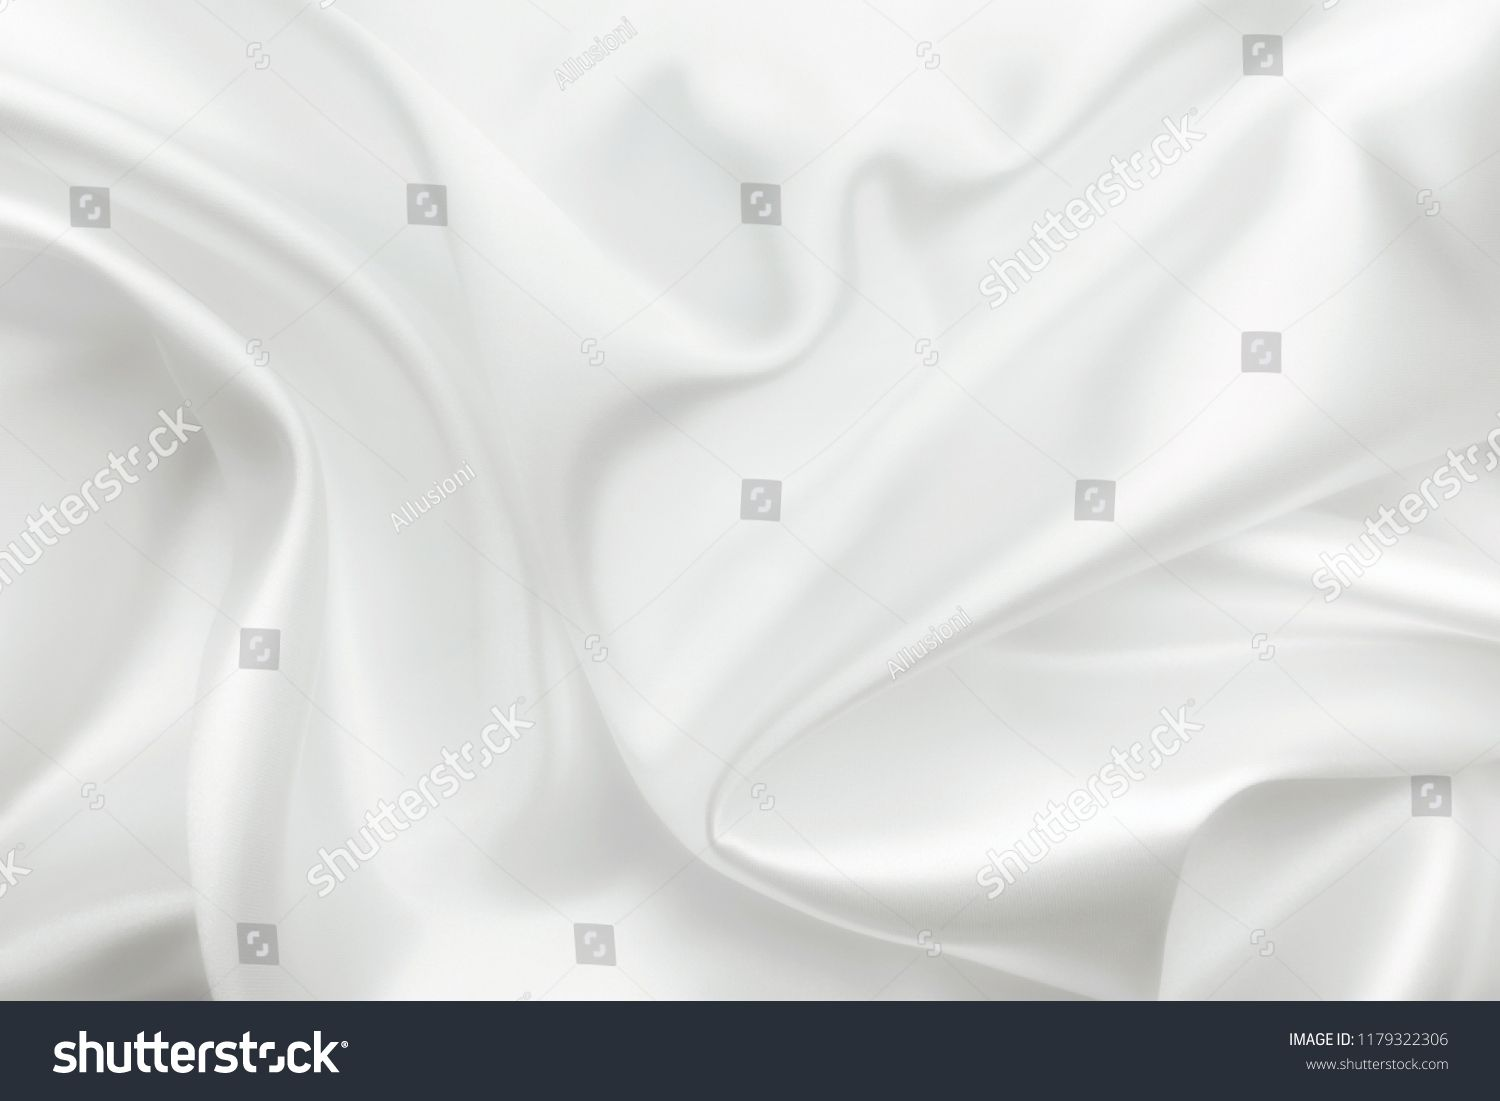 Elegant white satin silk with waves abstract background also rh pinterest